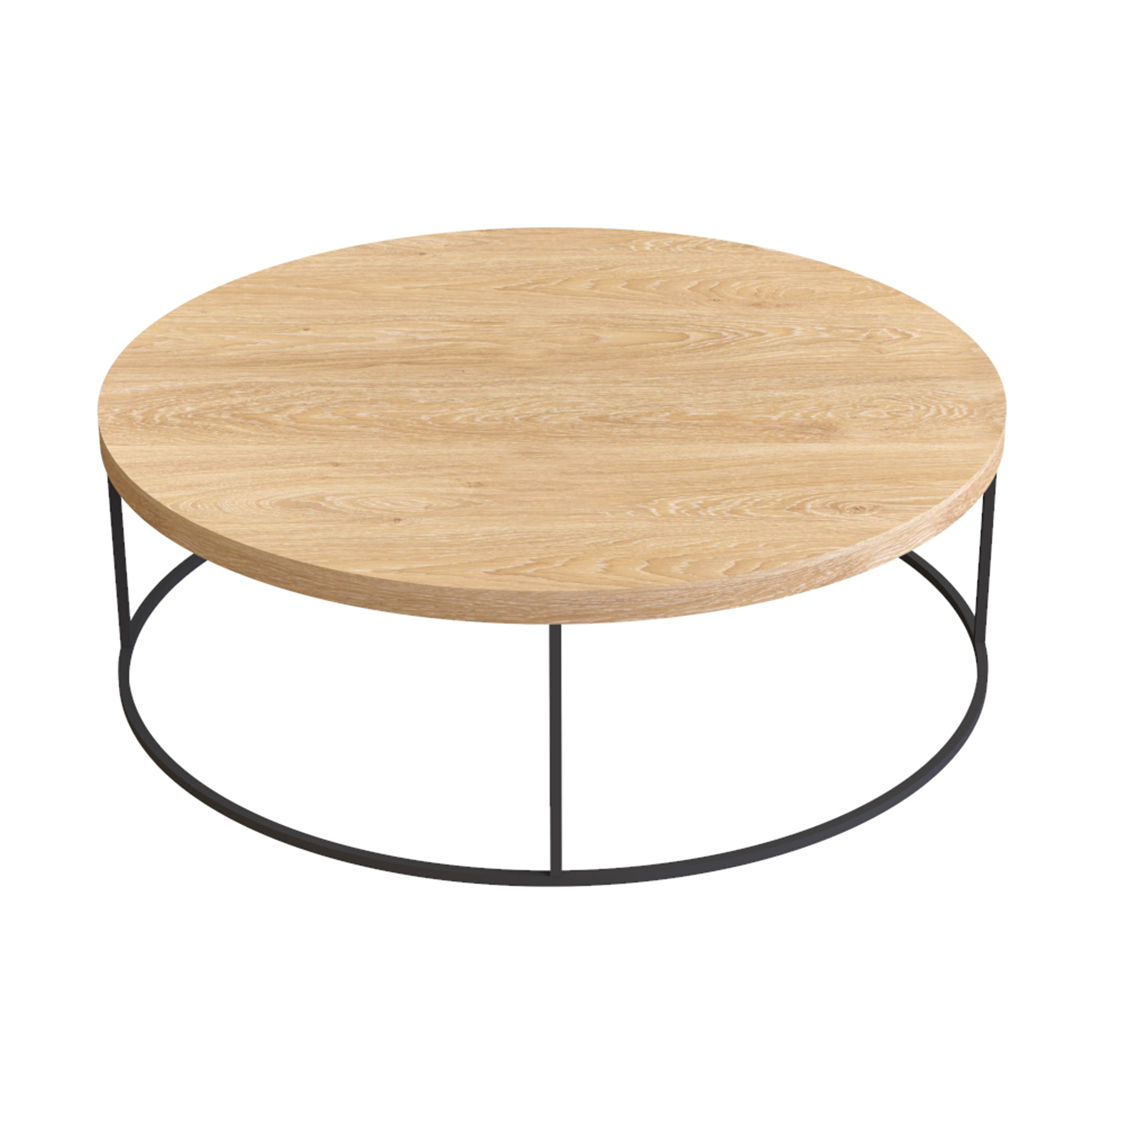 ER Round Coffee Table | Bench